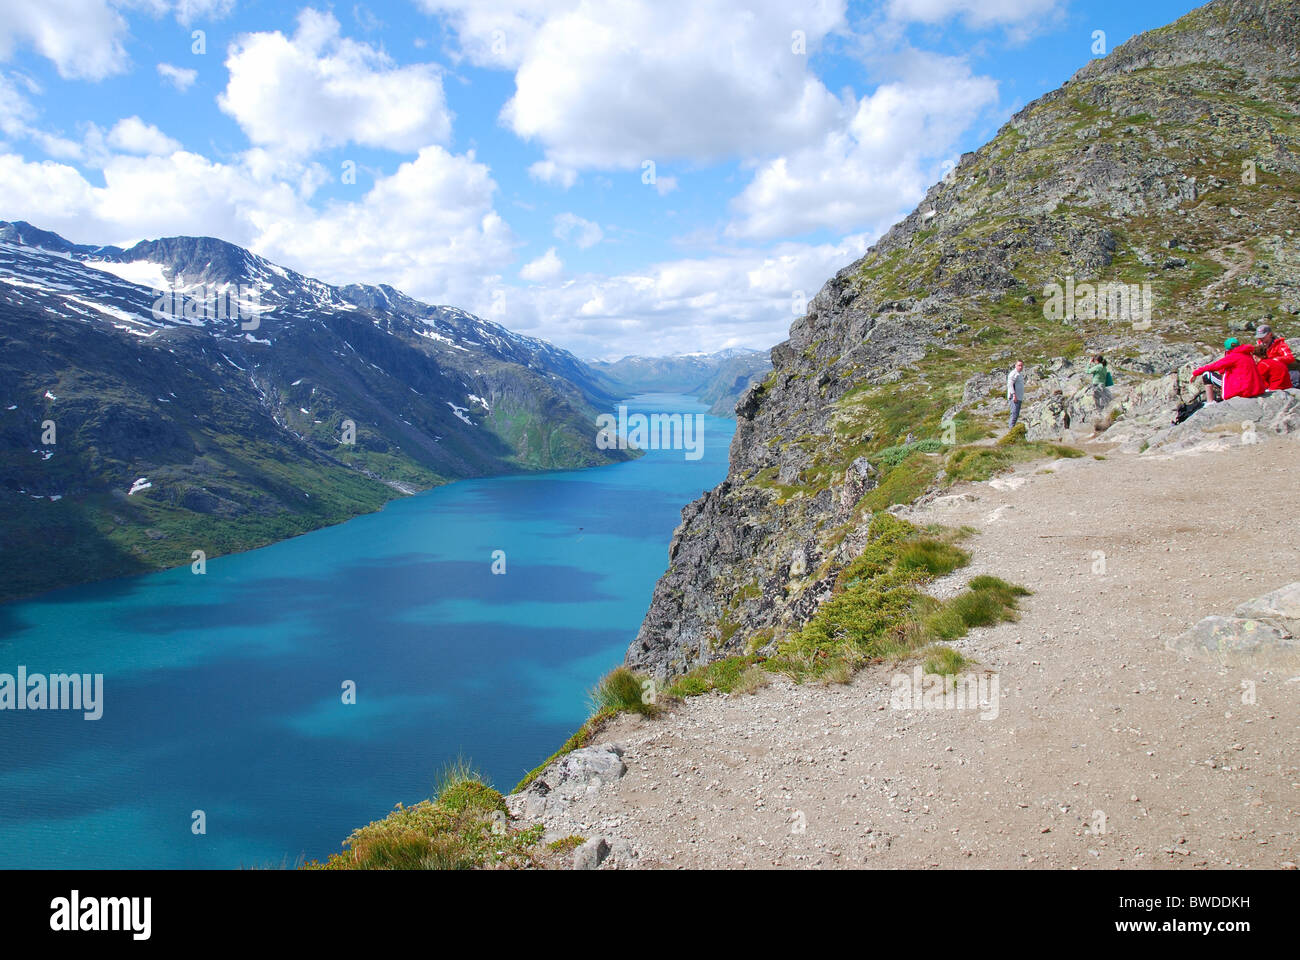 Hiking in the Norwegian mountains. - Stock Image